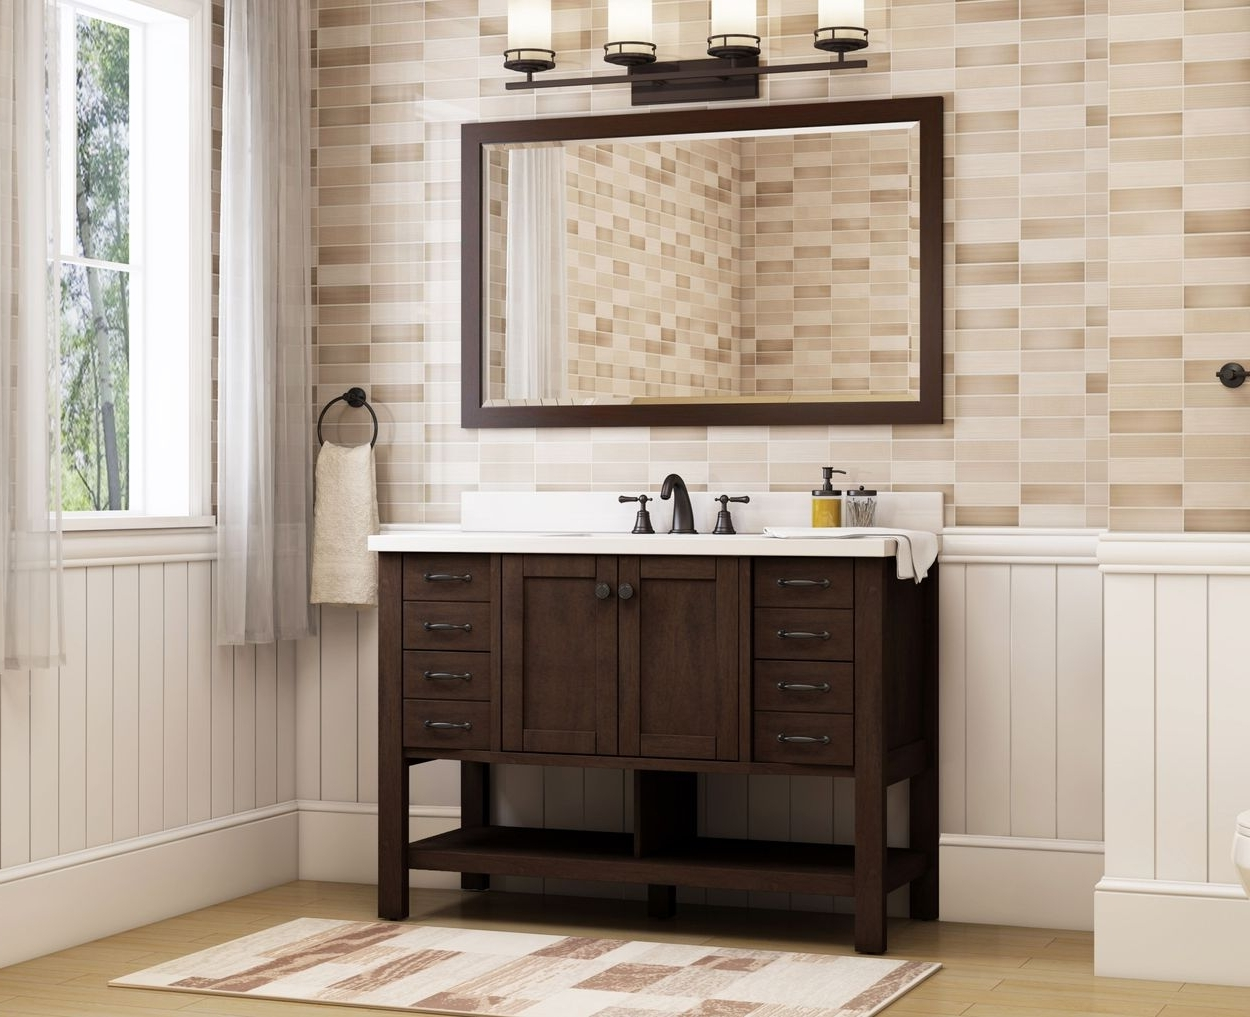 Allen + Roth Kingscote 48 In Espresso Single Sink Bathroom Vanity With White Engineered Stone Top Allen Roth Bathroom Designs